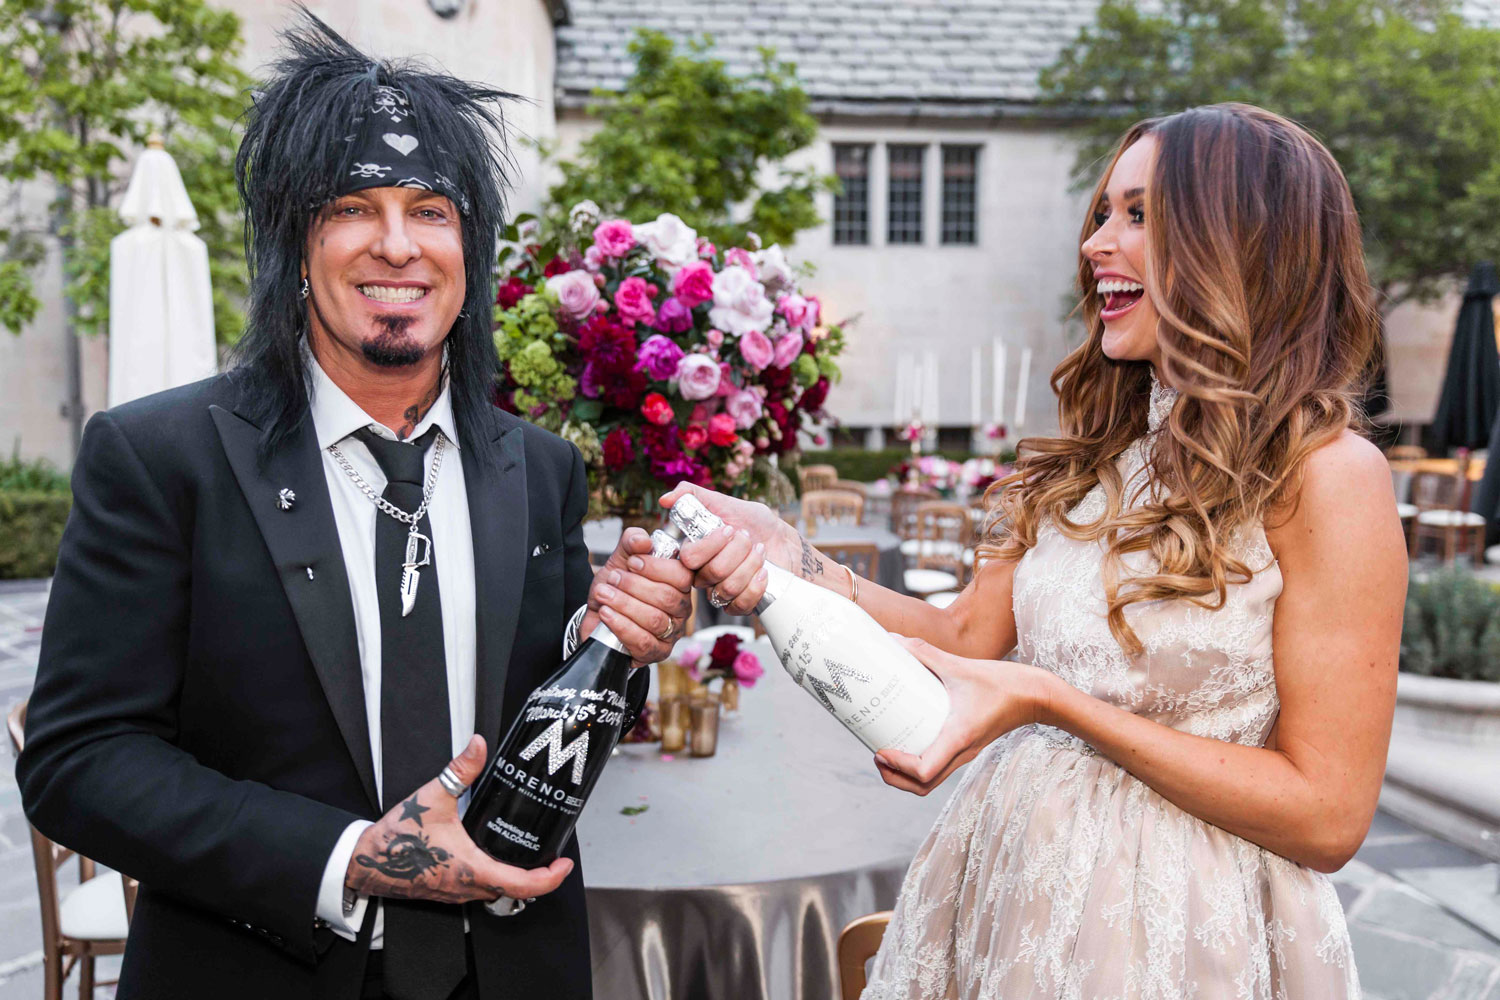 His and hers wedding champagne bottles motley crue nikki sixx and courtney bingham